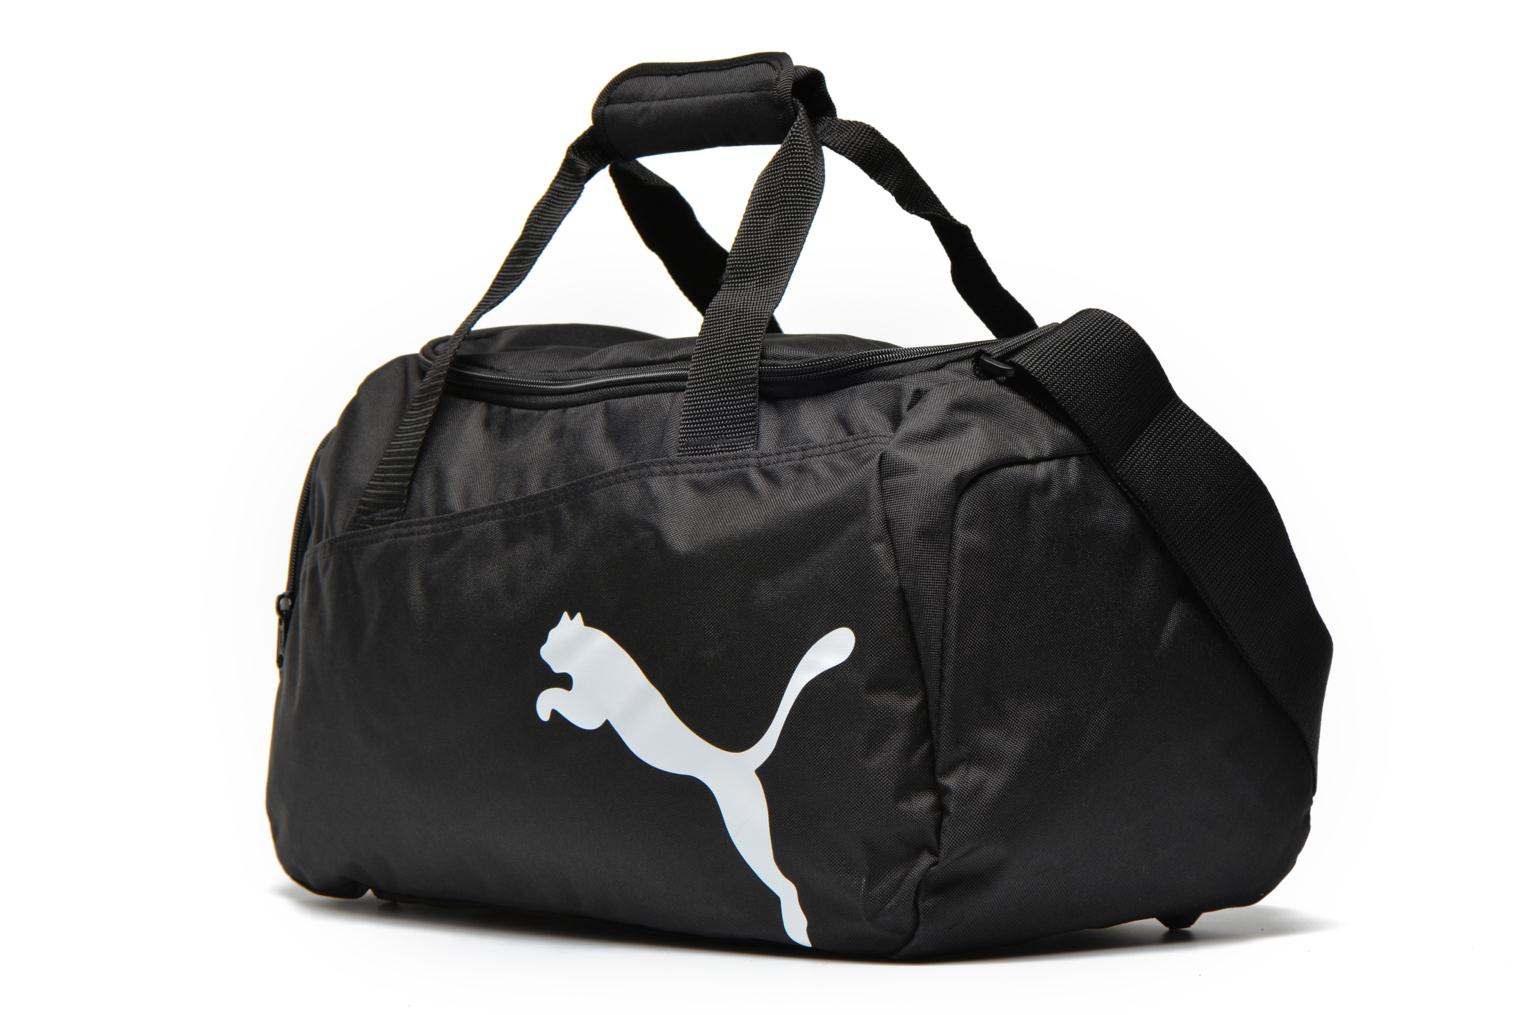 Pro Training Bag S Black